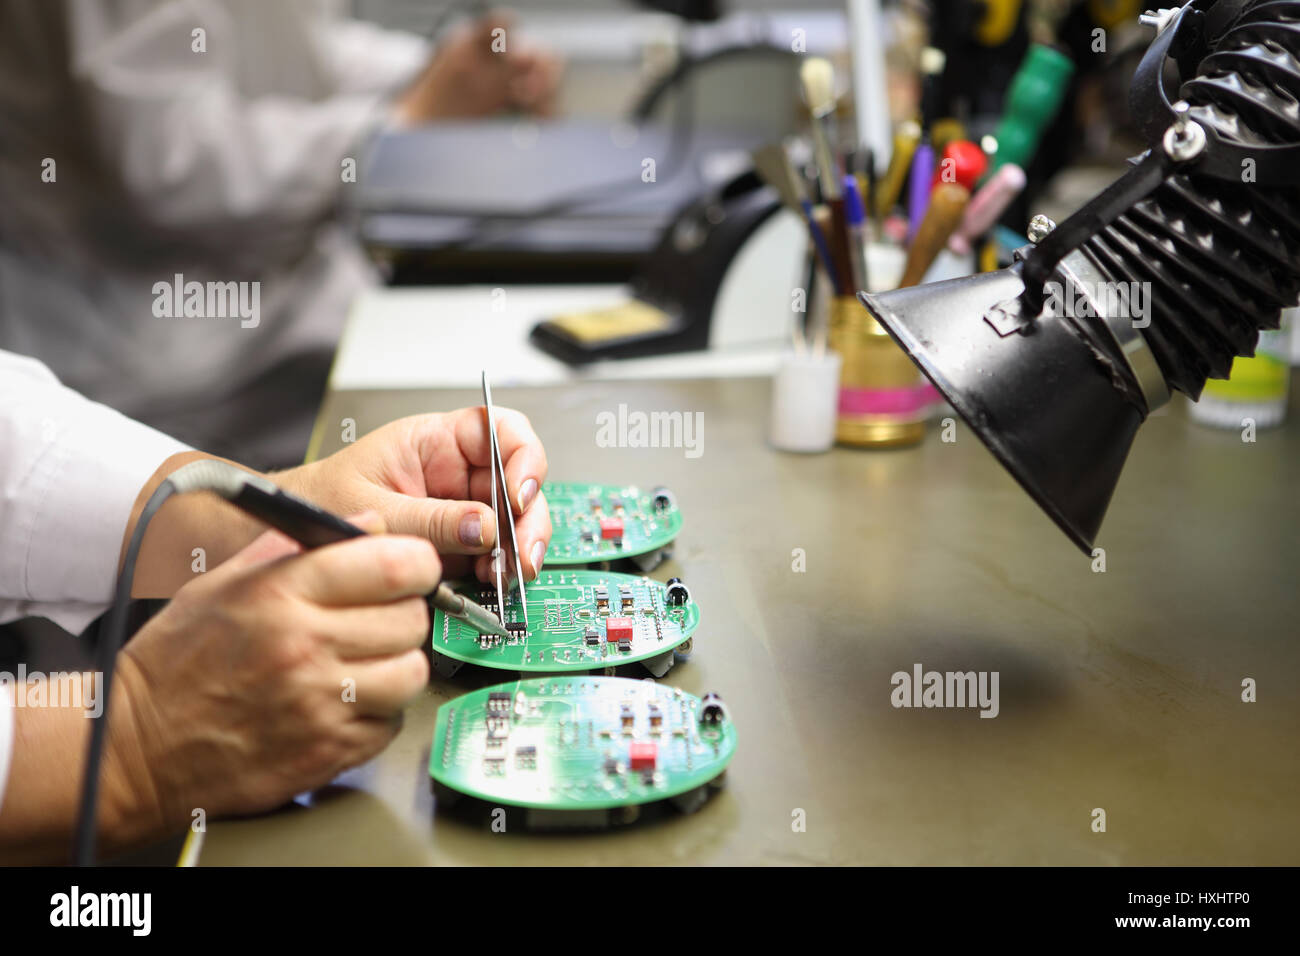 Circuit Board Manufacturing Stock Photos Electronic Design Services Electronics Manual Assembly Of Soldering Close Up The